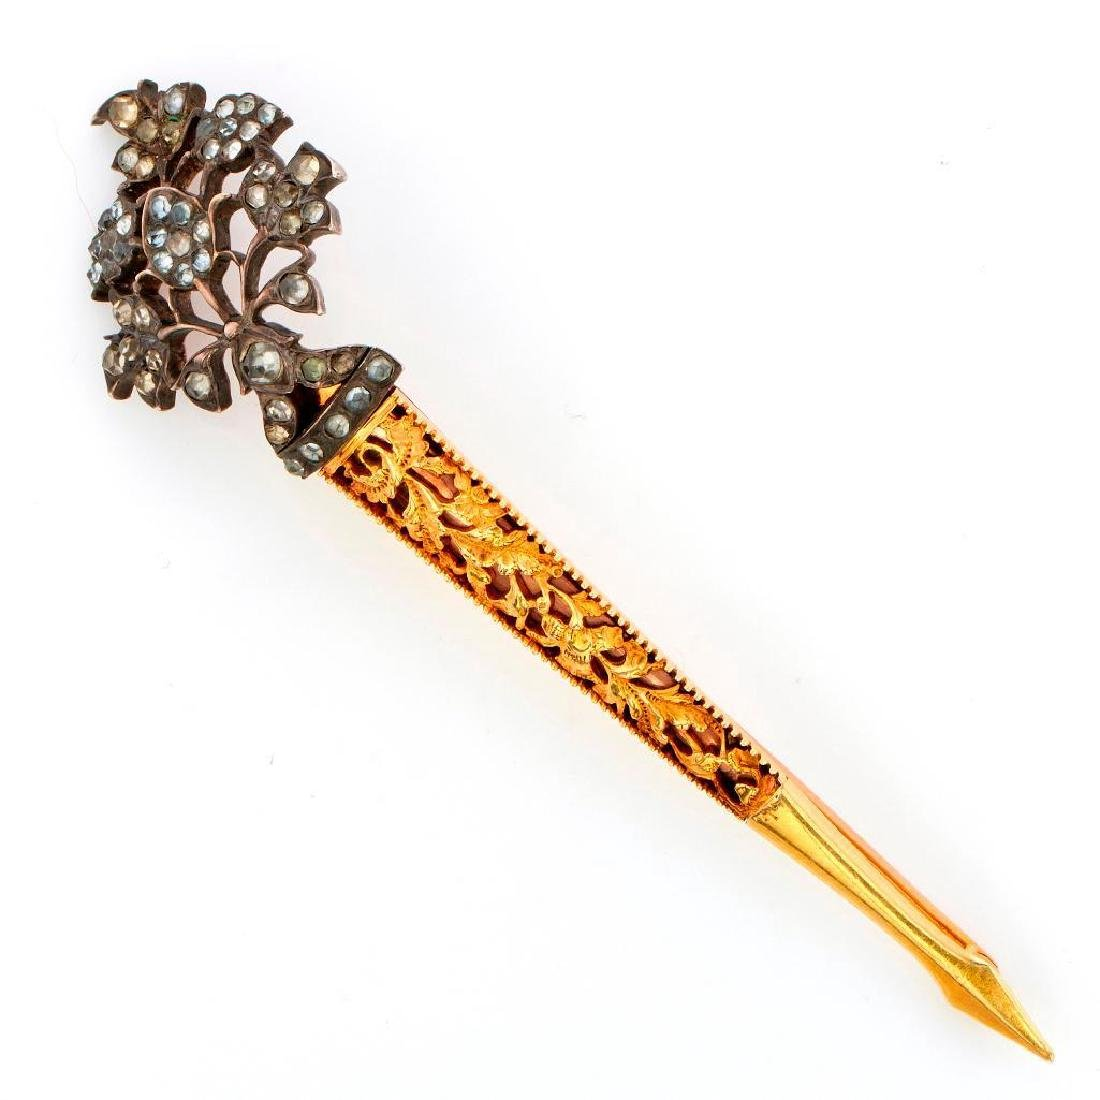 Silver-topped rose gold/14k yellow gold scabbard brooch